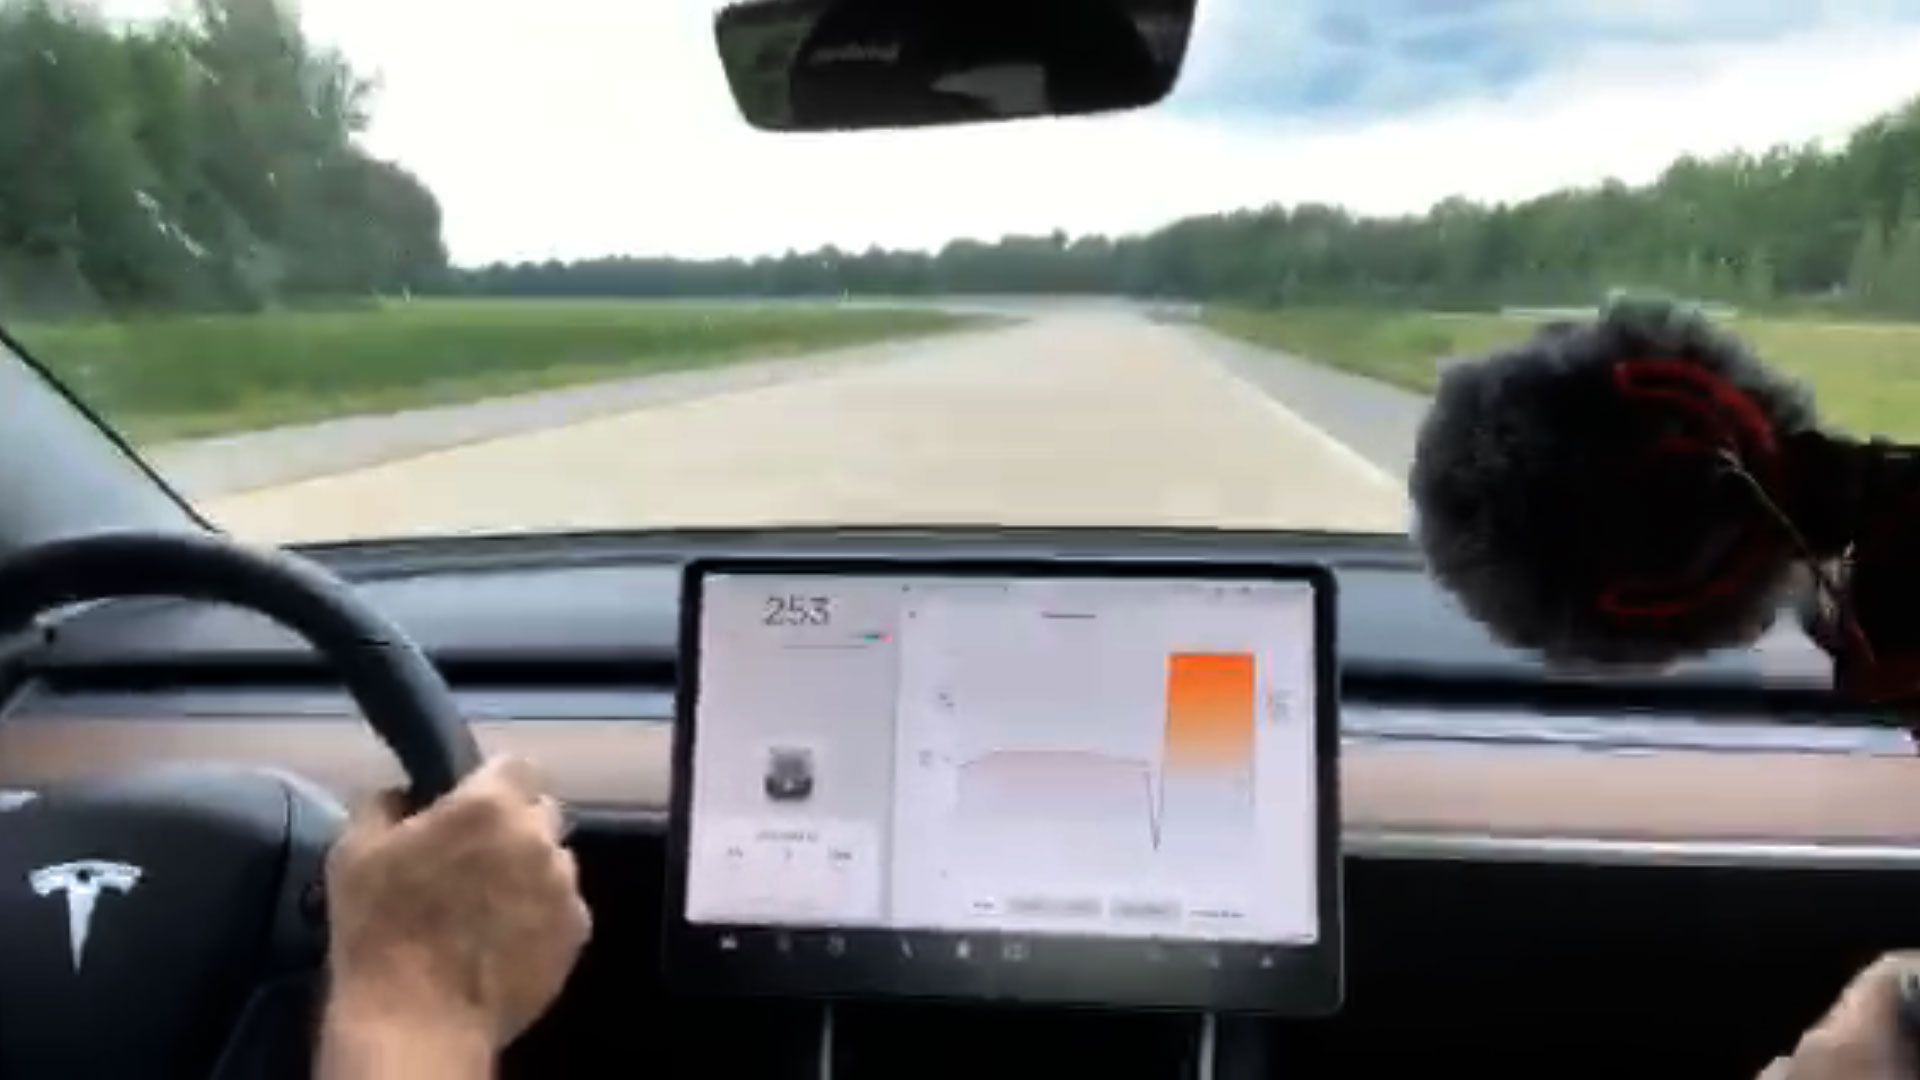 Watch Tesla Model 3's breathtaking performance reaching 260 km/h (162 mph) on the race track